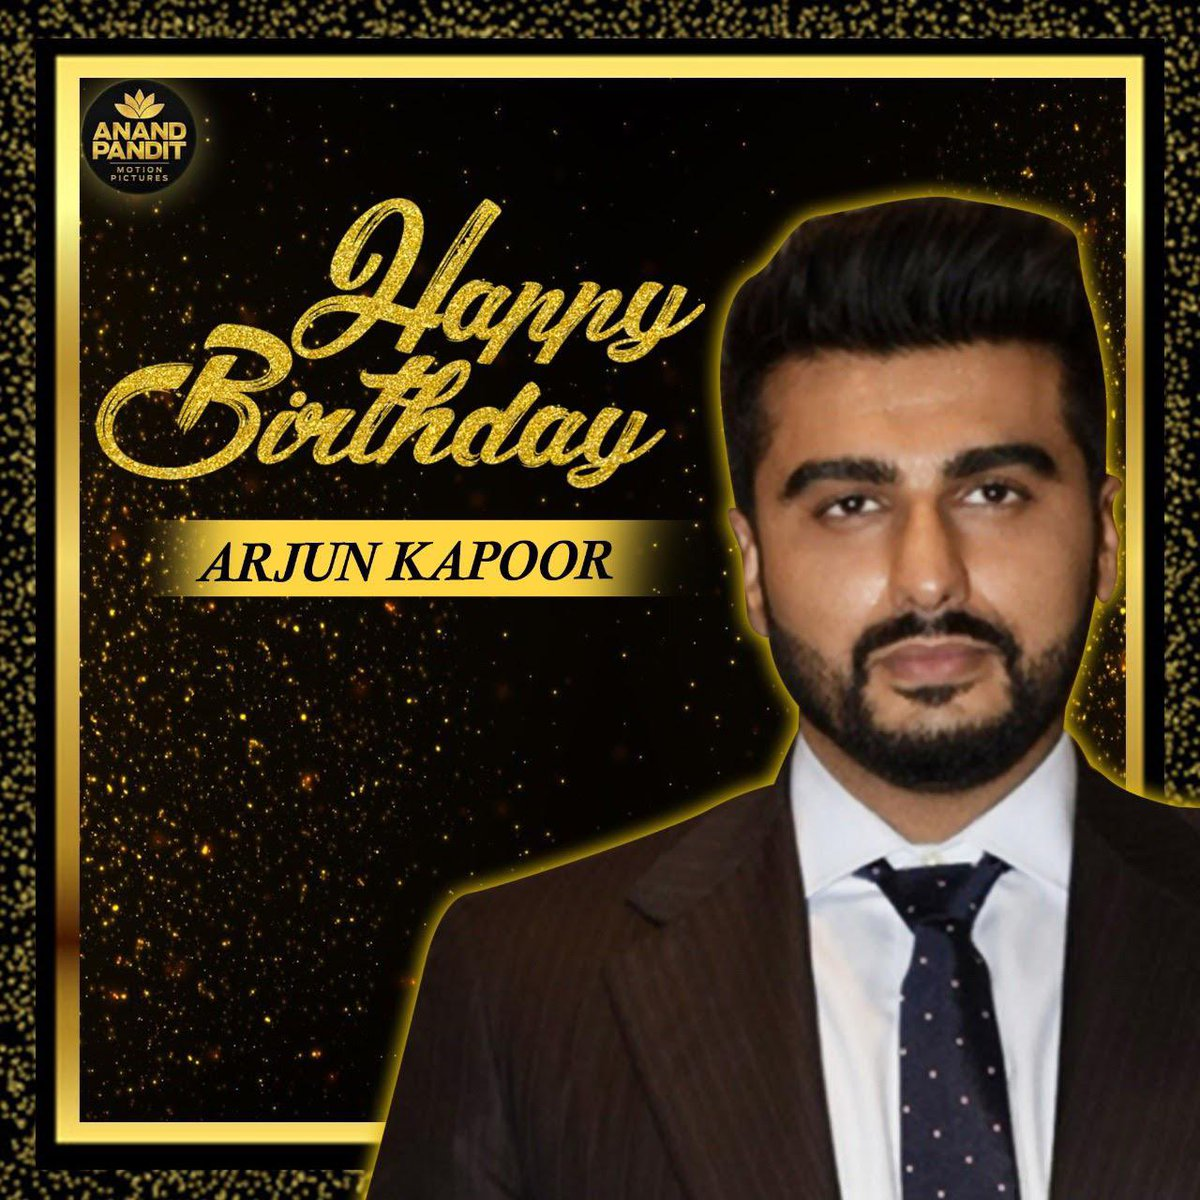 Happiest birthday Arjun Kapoor. You are not only an amazing actor, brother and son, but you are also a wonderful and a honest human being. Stay happy always! @arjunk26 ✨ https://t.co/ECNdDkaS7d